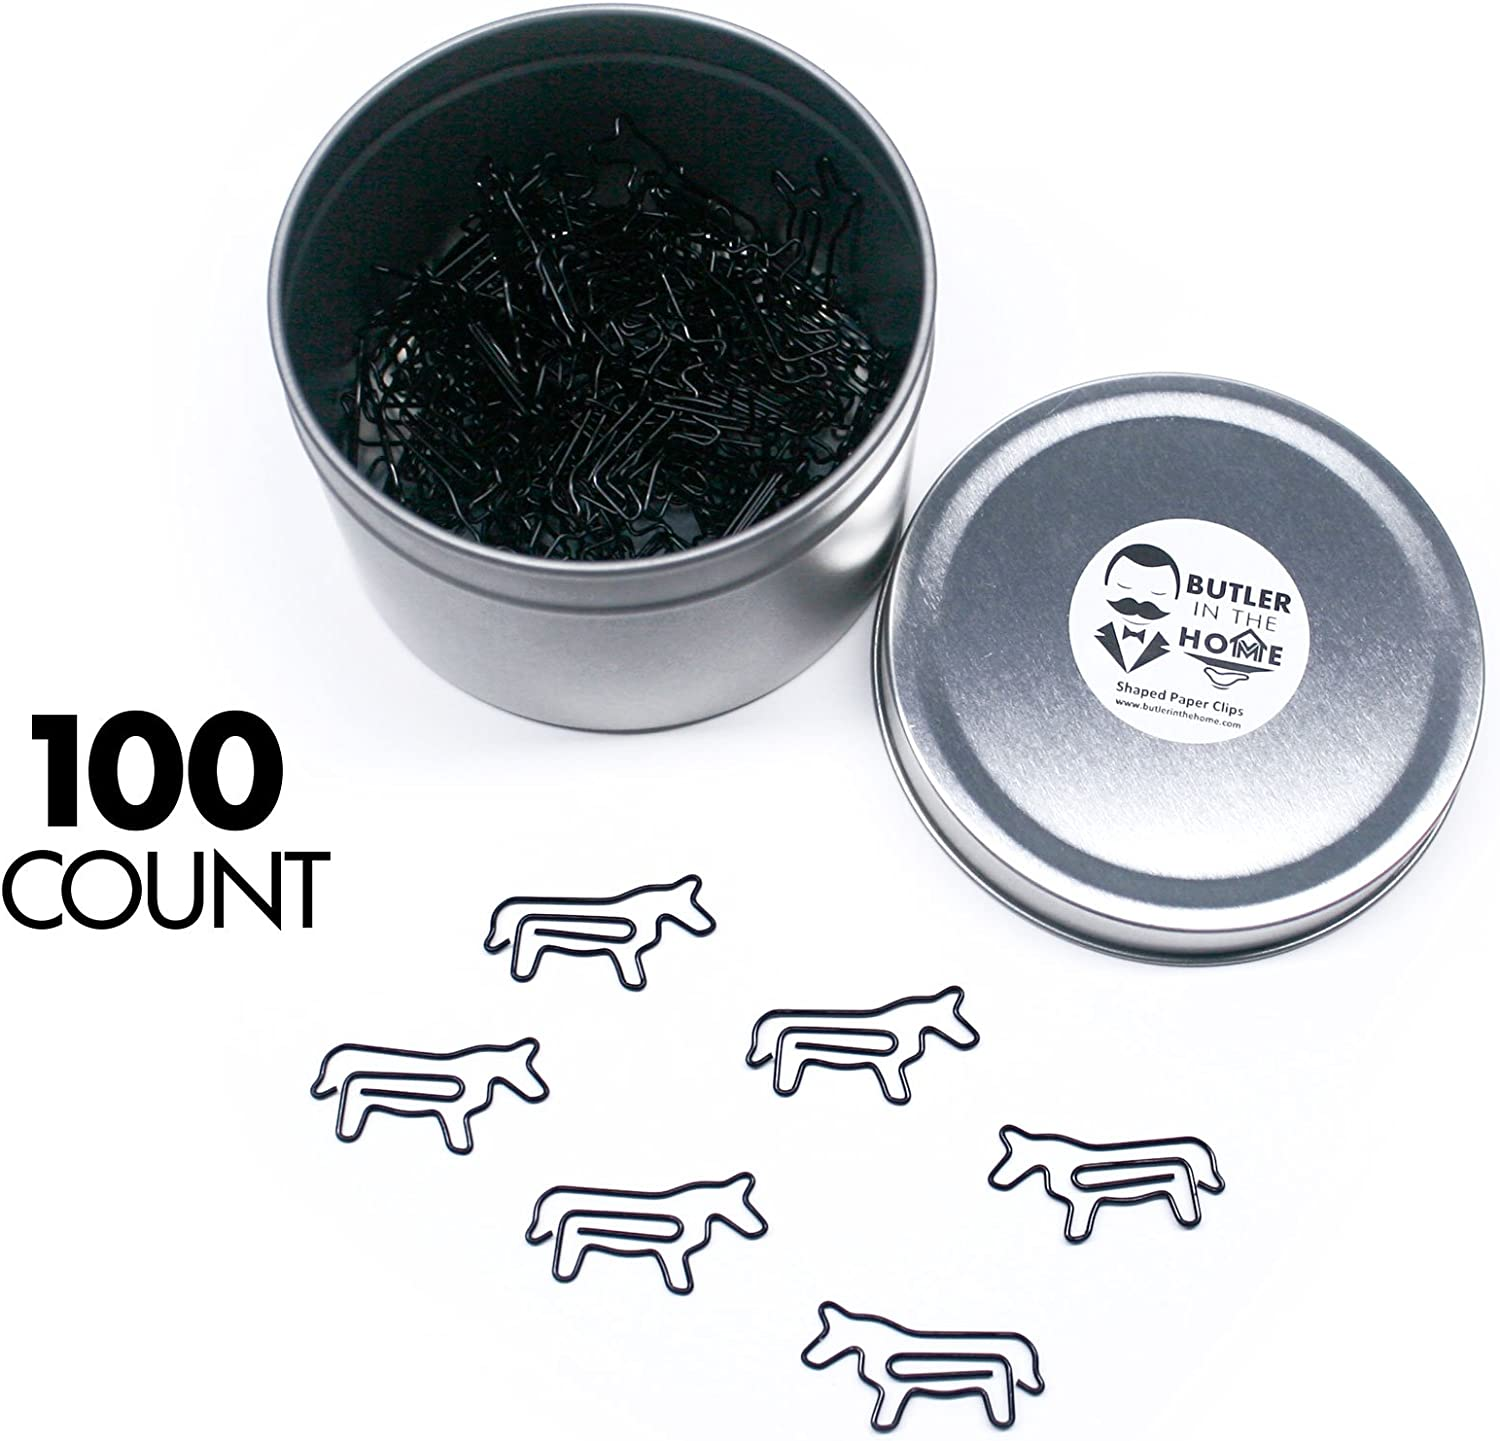 Butler in the Home Horse Shaped Paper Clips Great for Paper Clip Collectors or Office Gift - Comes in Round Tin with Lid and Gift Box (100 Count Black)